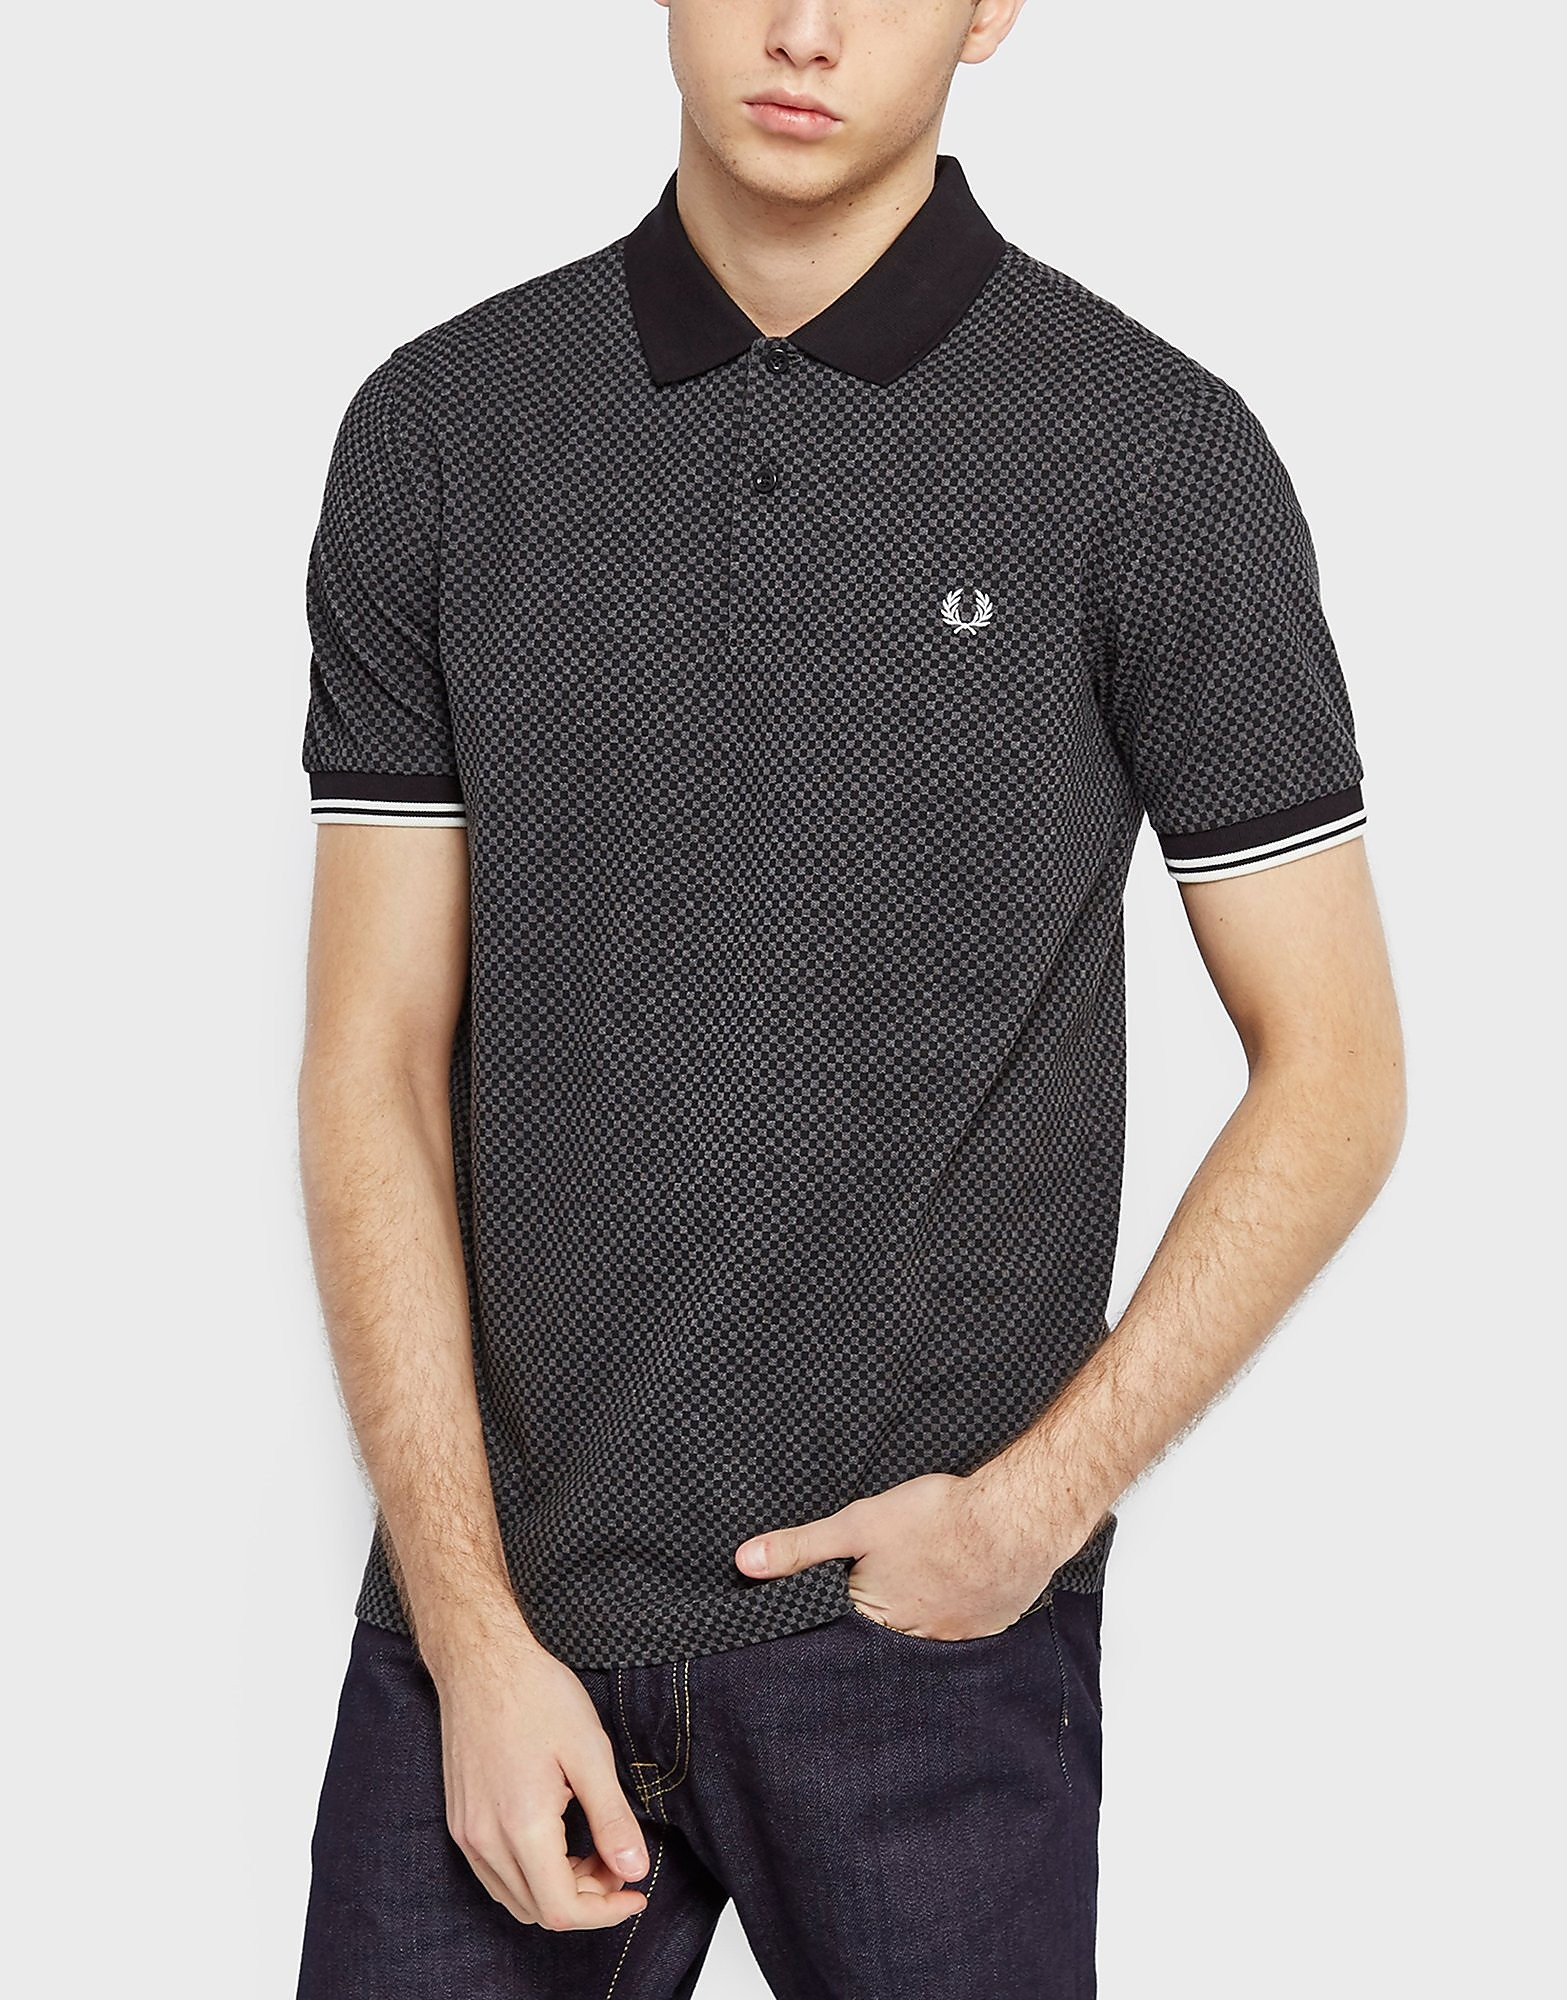 Cheap fred perry polo shirts sale items at discount uk Fred perry mens shirts sale